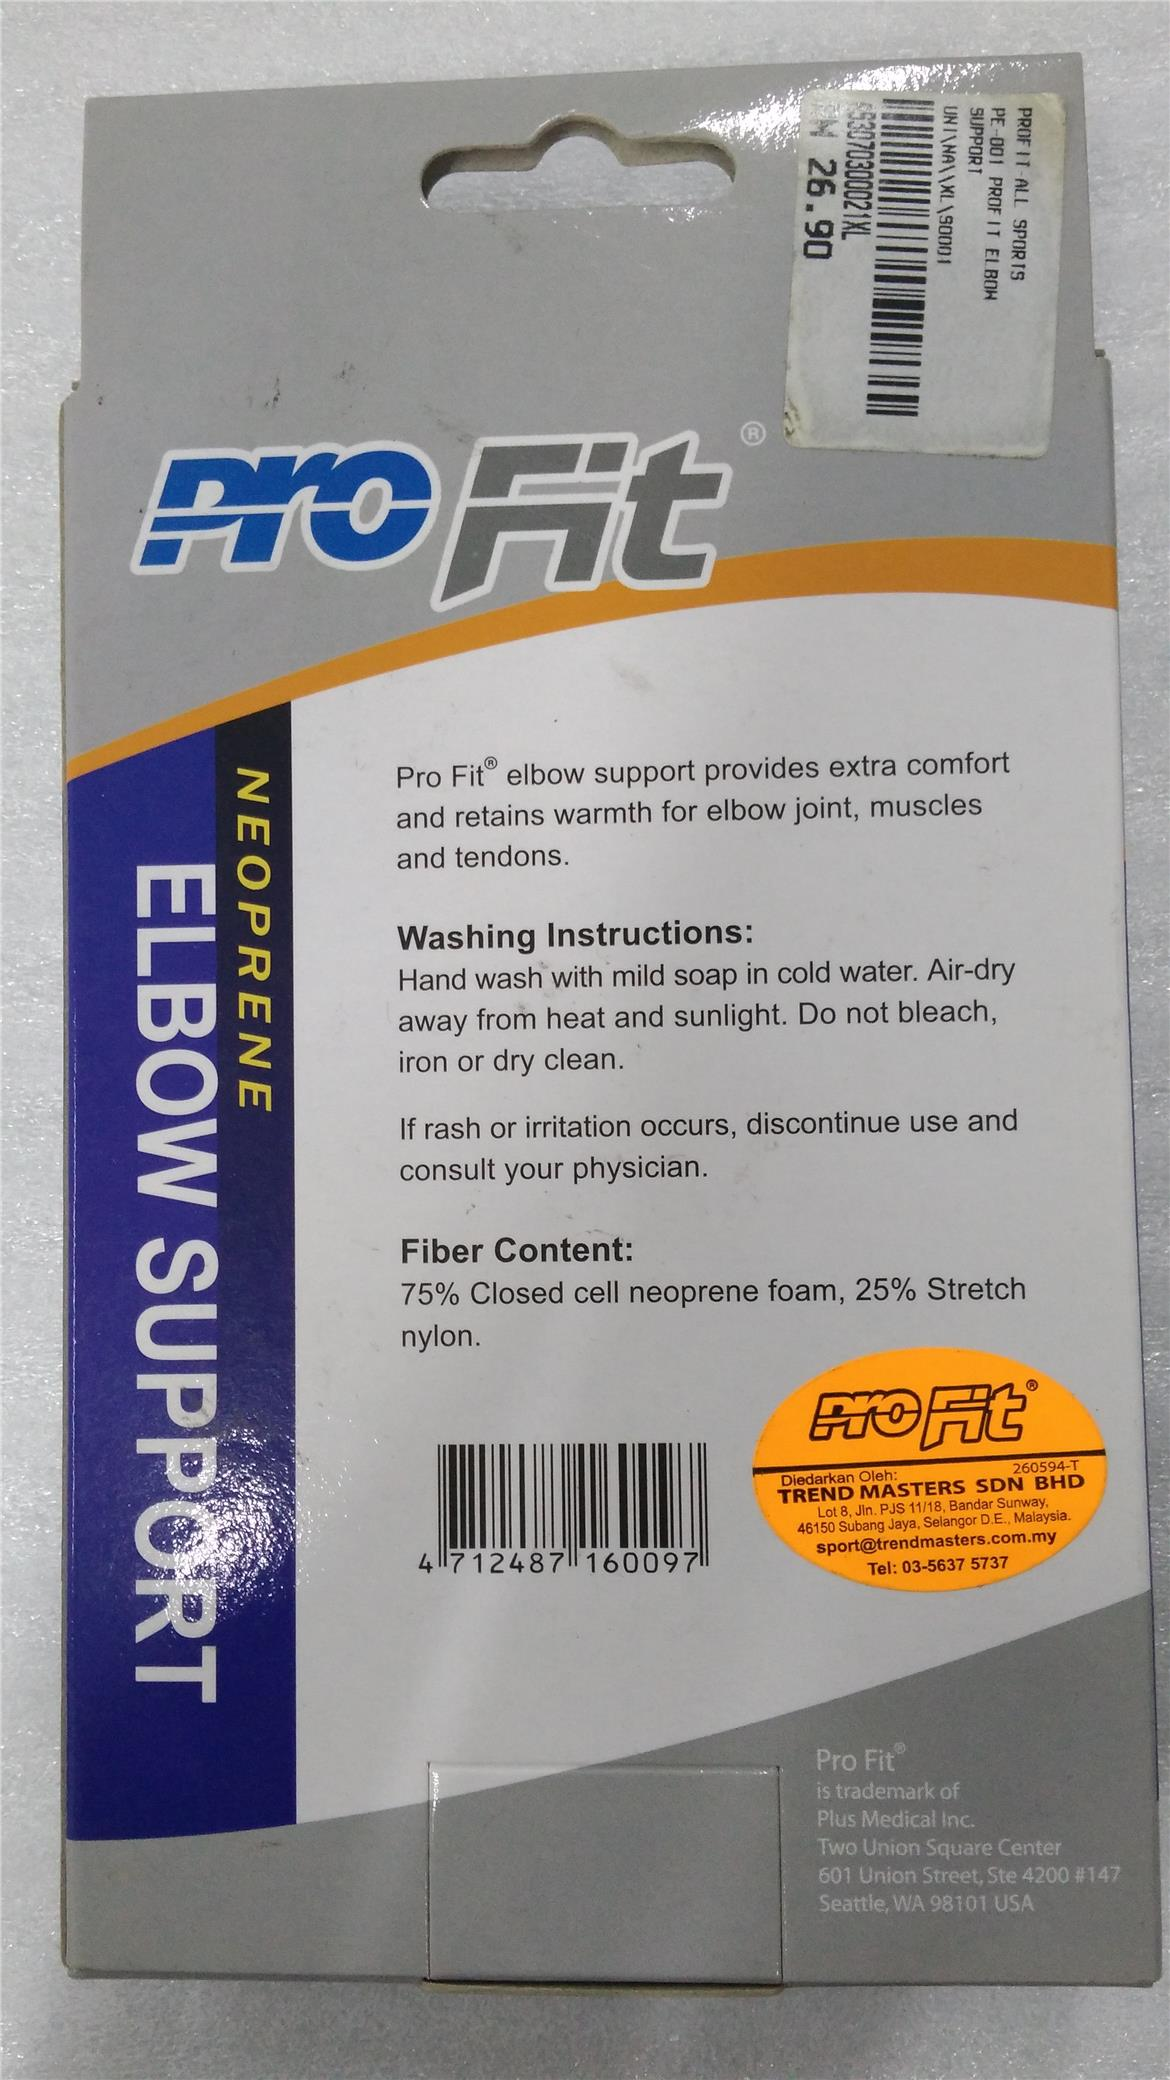 Pro Fit Neoprene Elbow Support PE001 Size-S Limited Clearance